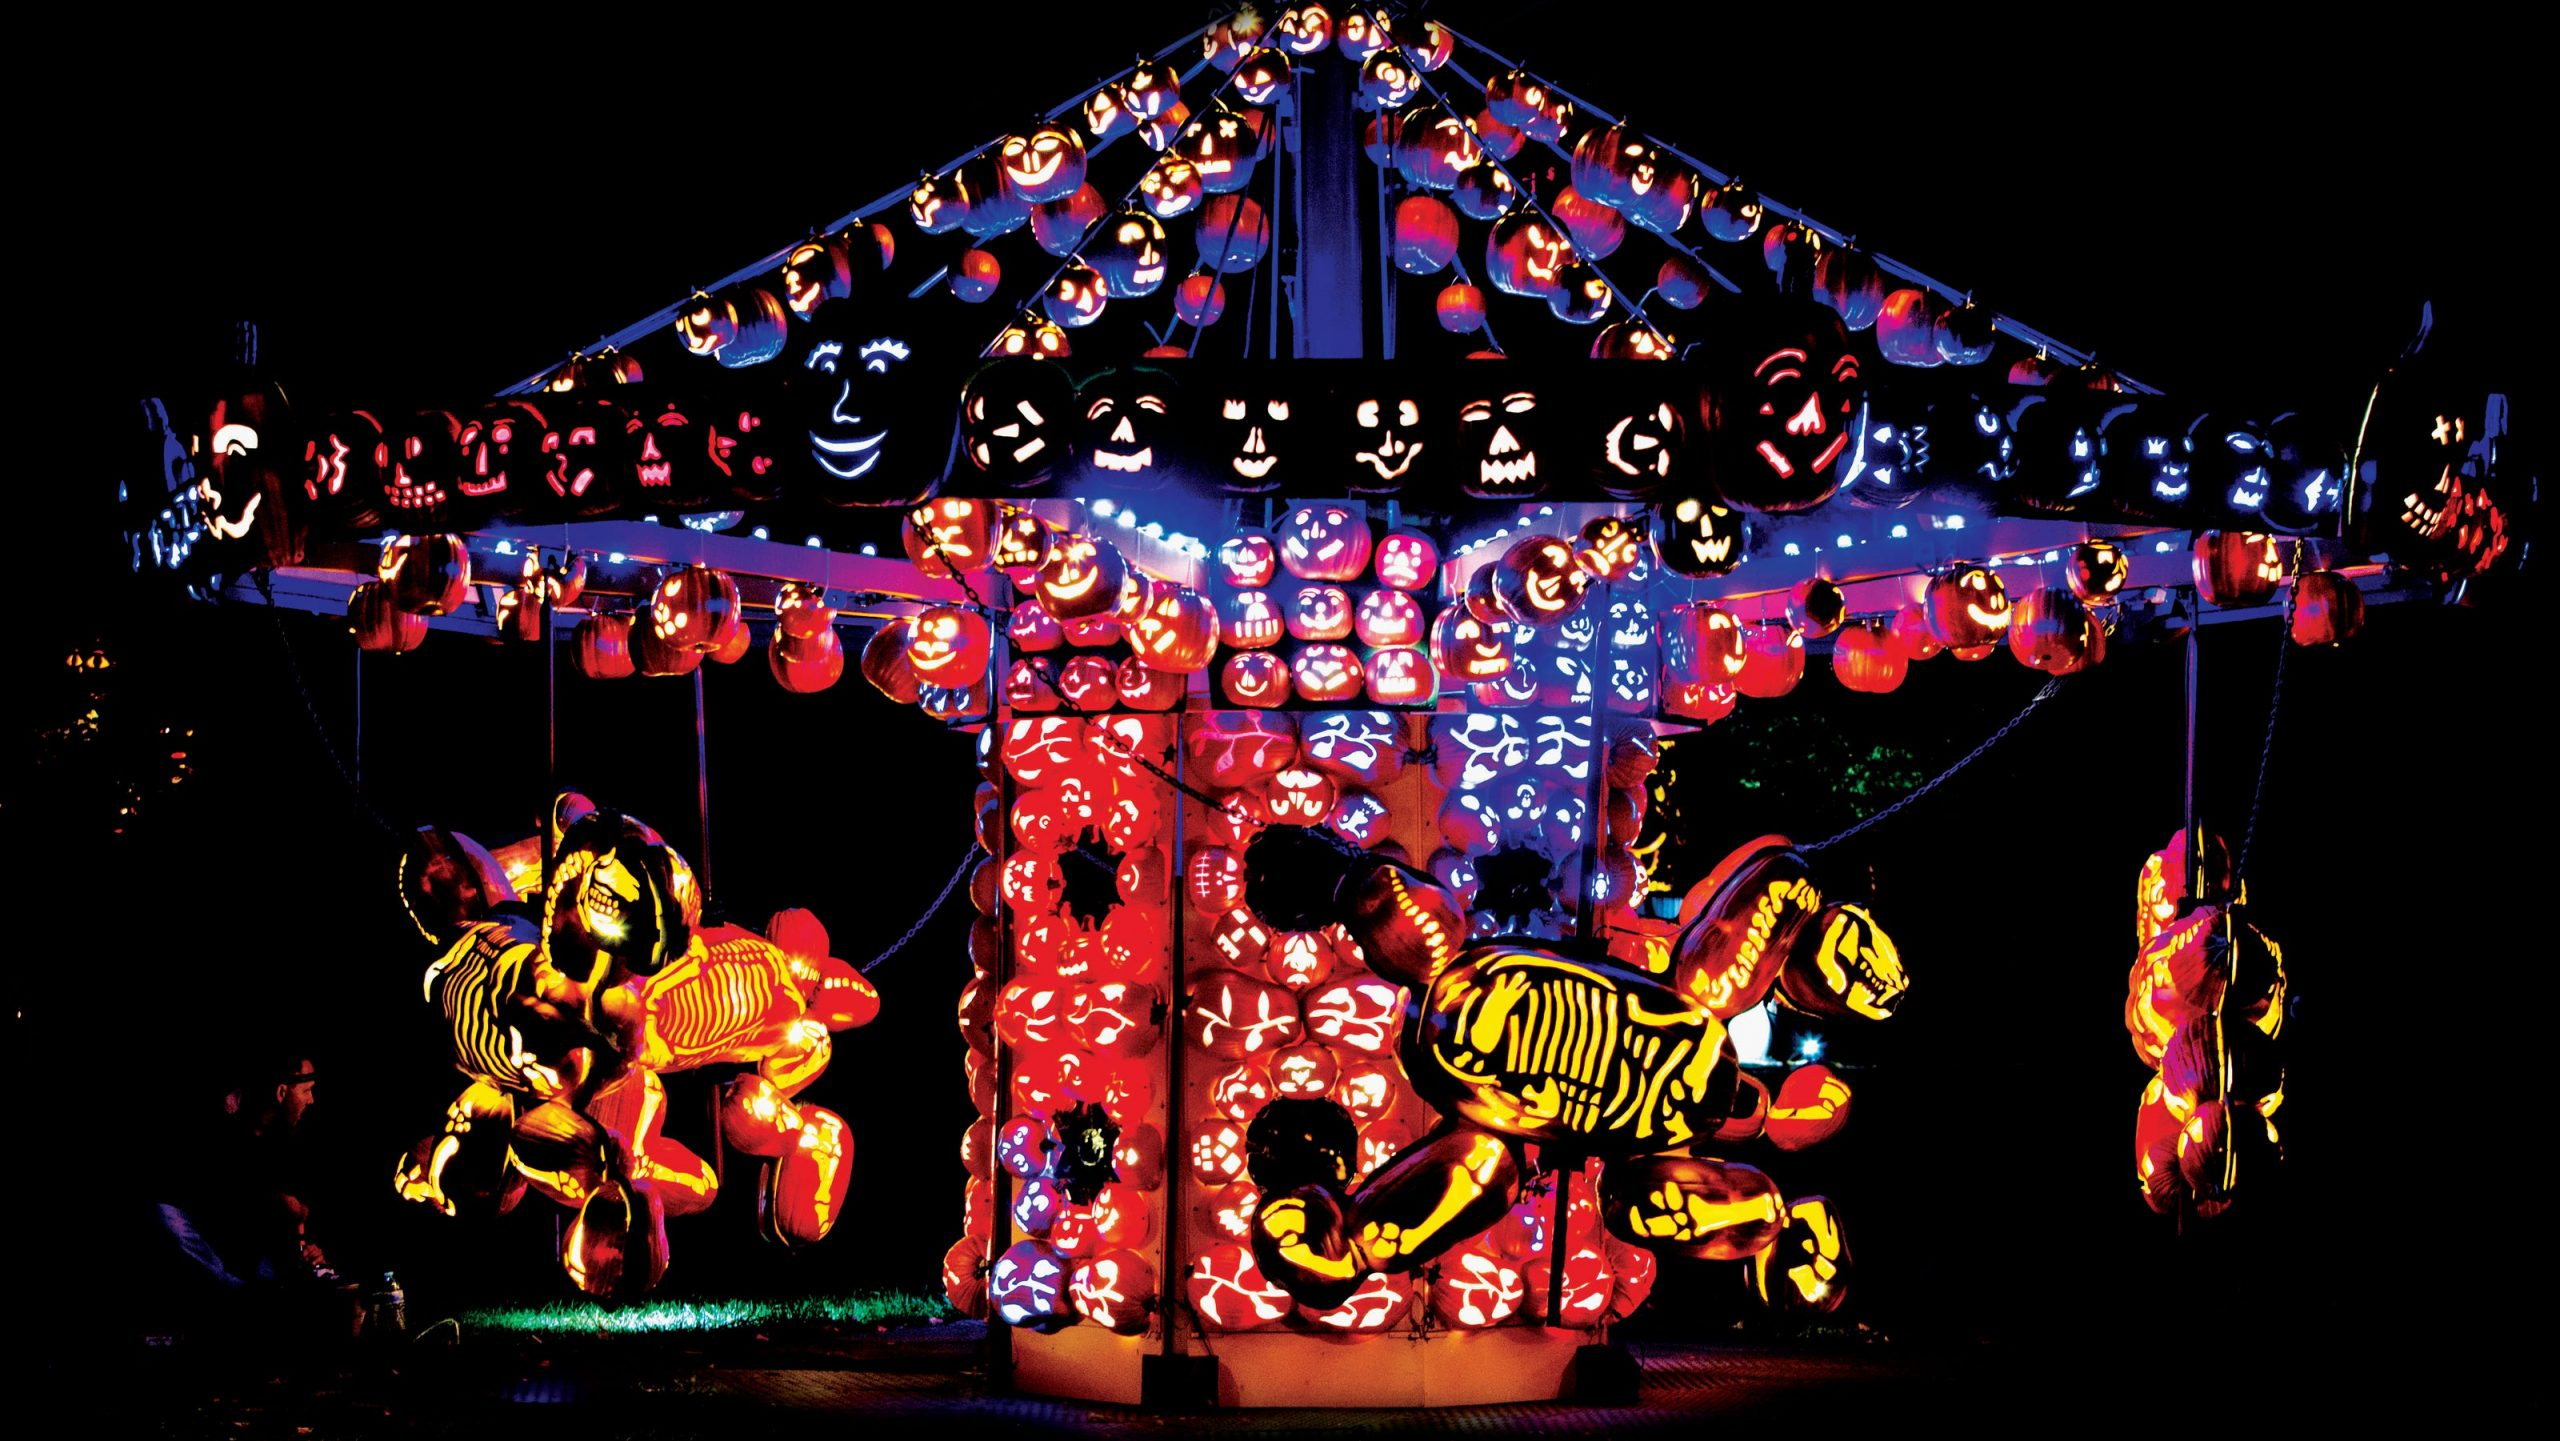 How To Get To The Great Jack O'lantern Blaze